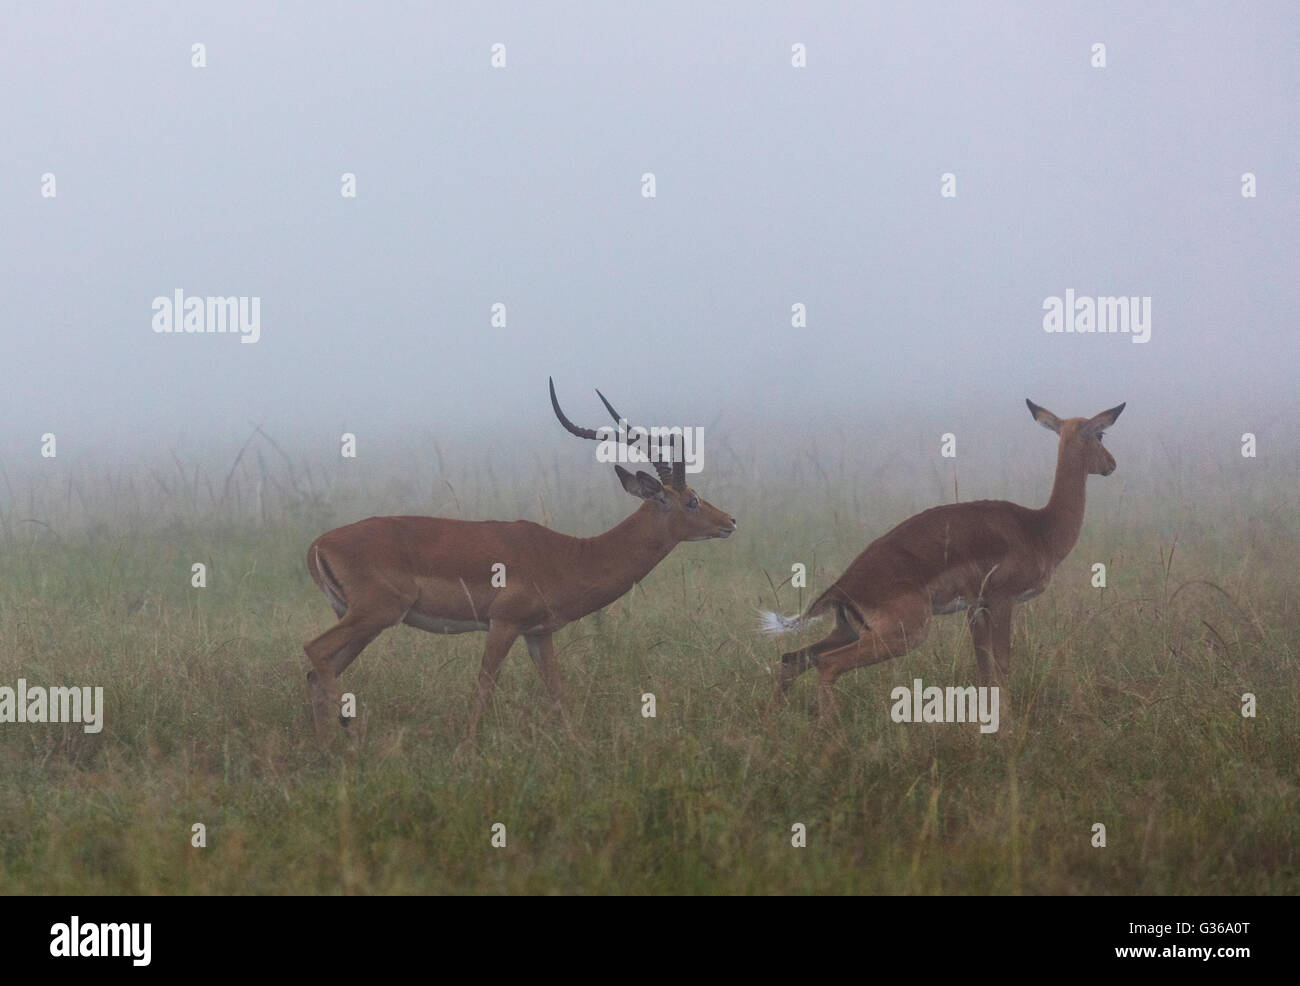 Male and female Impala antelope mating in early morning in foggy conditions, Masai Mara, Kenya, Africa - Stock Image